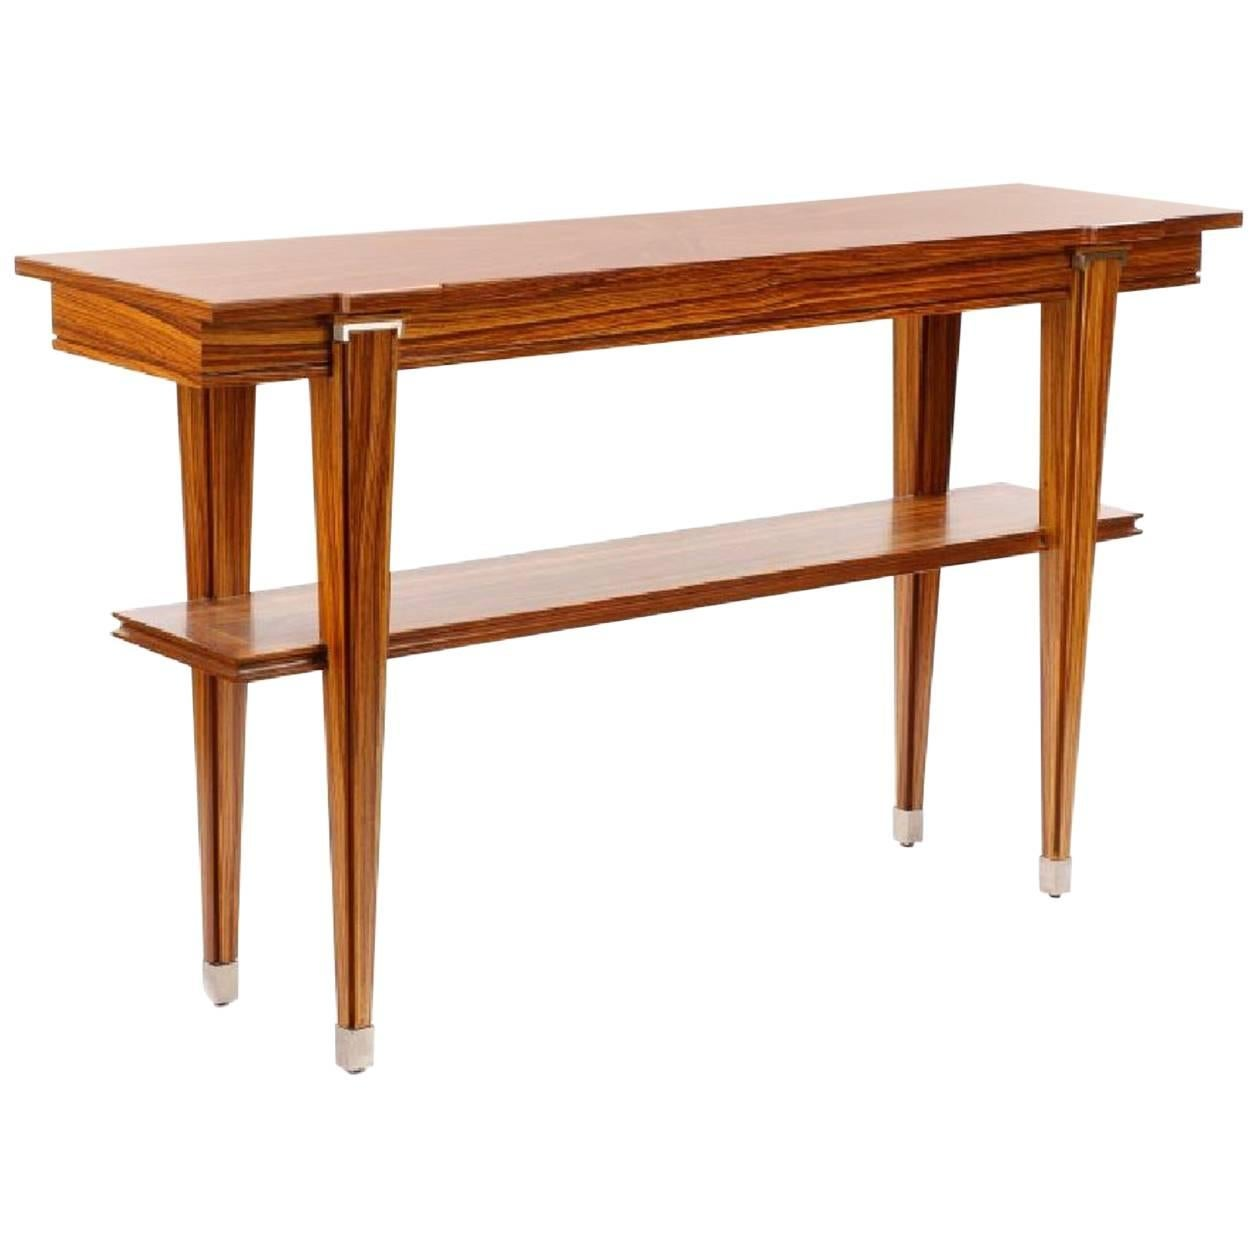 William Switzer Lucien Rollin Collection Console Serving Table